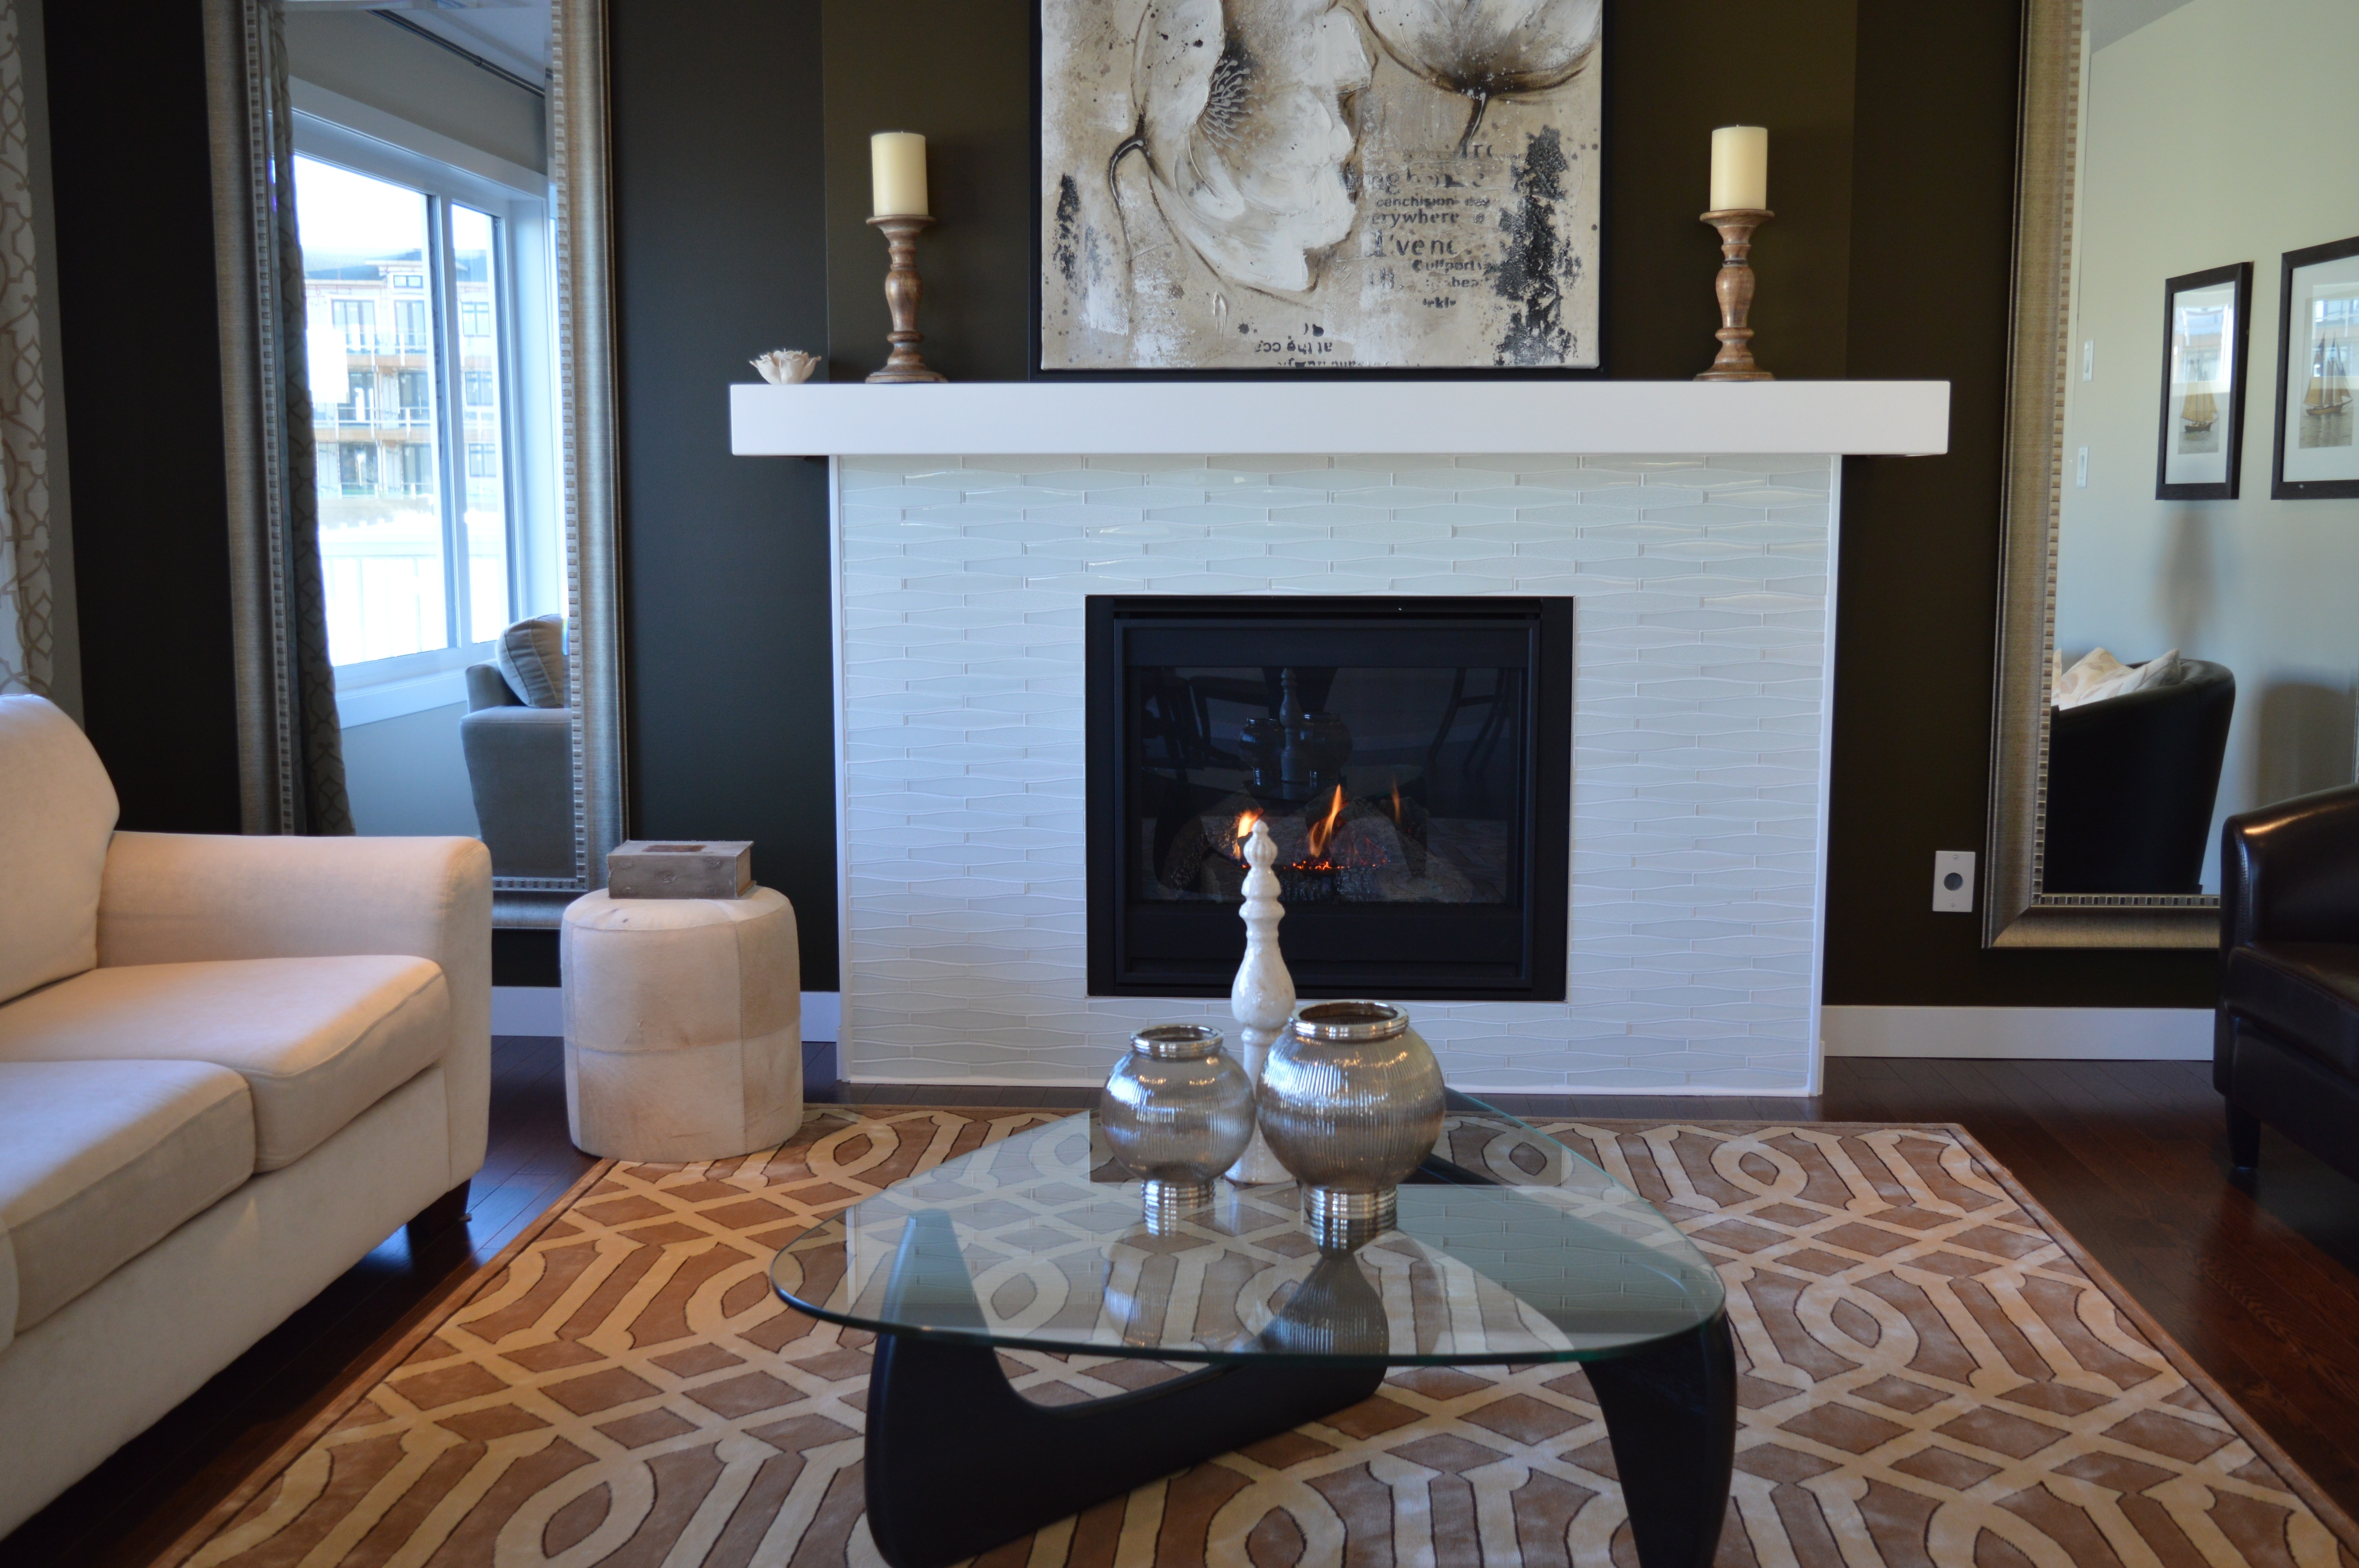 house painting services in Ottawa by PG PAINT & DESIGN  professional painters living room with black paint colour, white fireplace, sofa, rug and coffee table